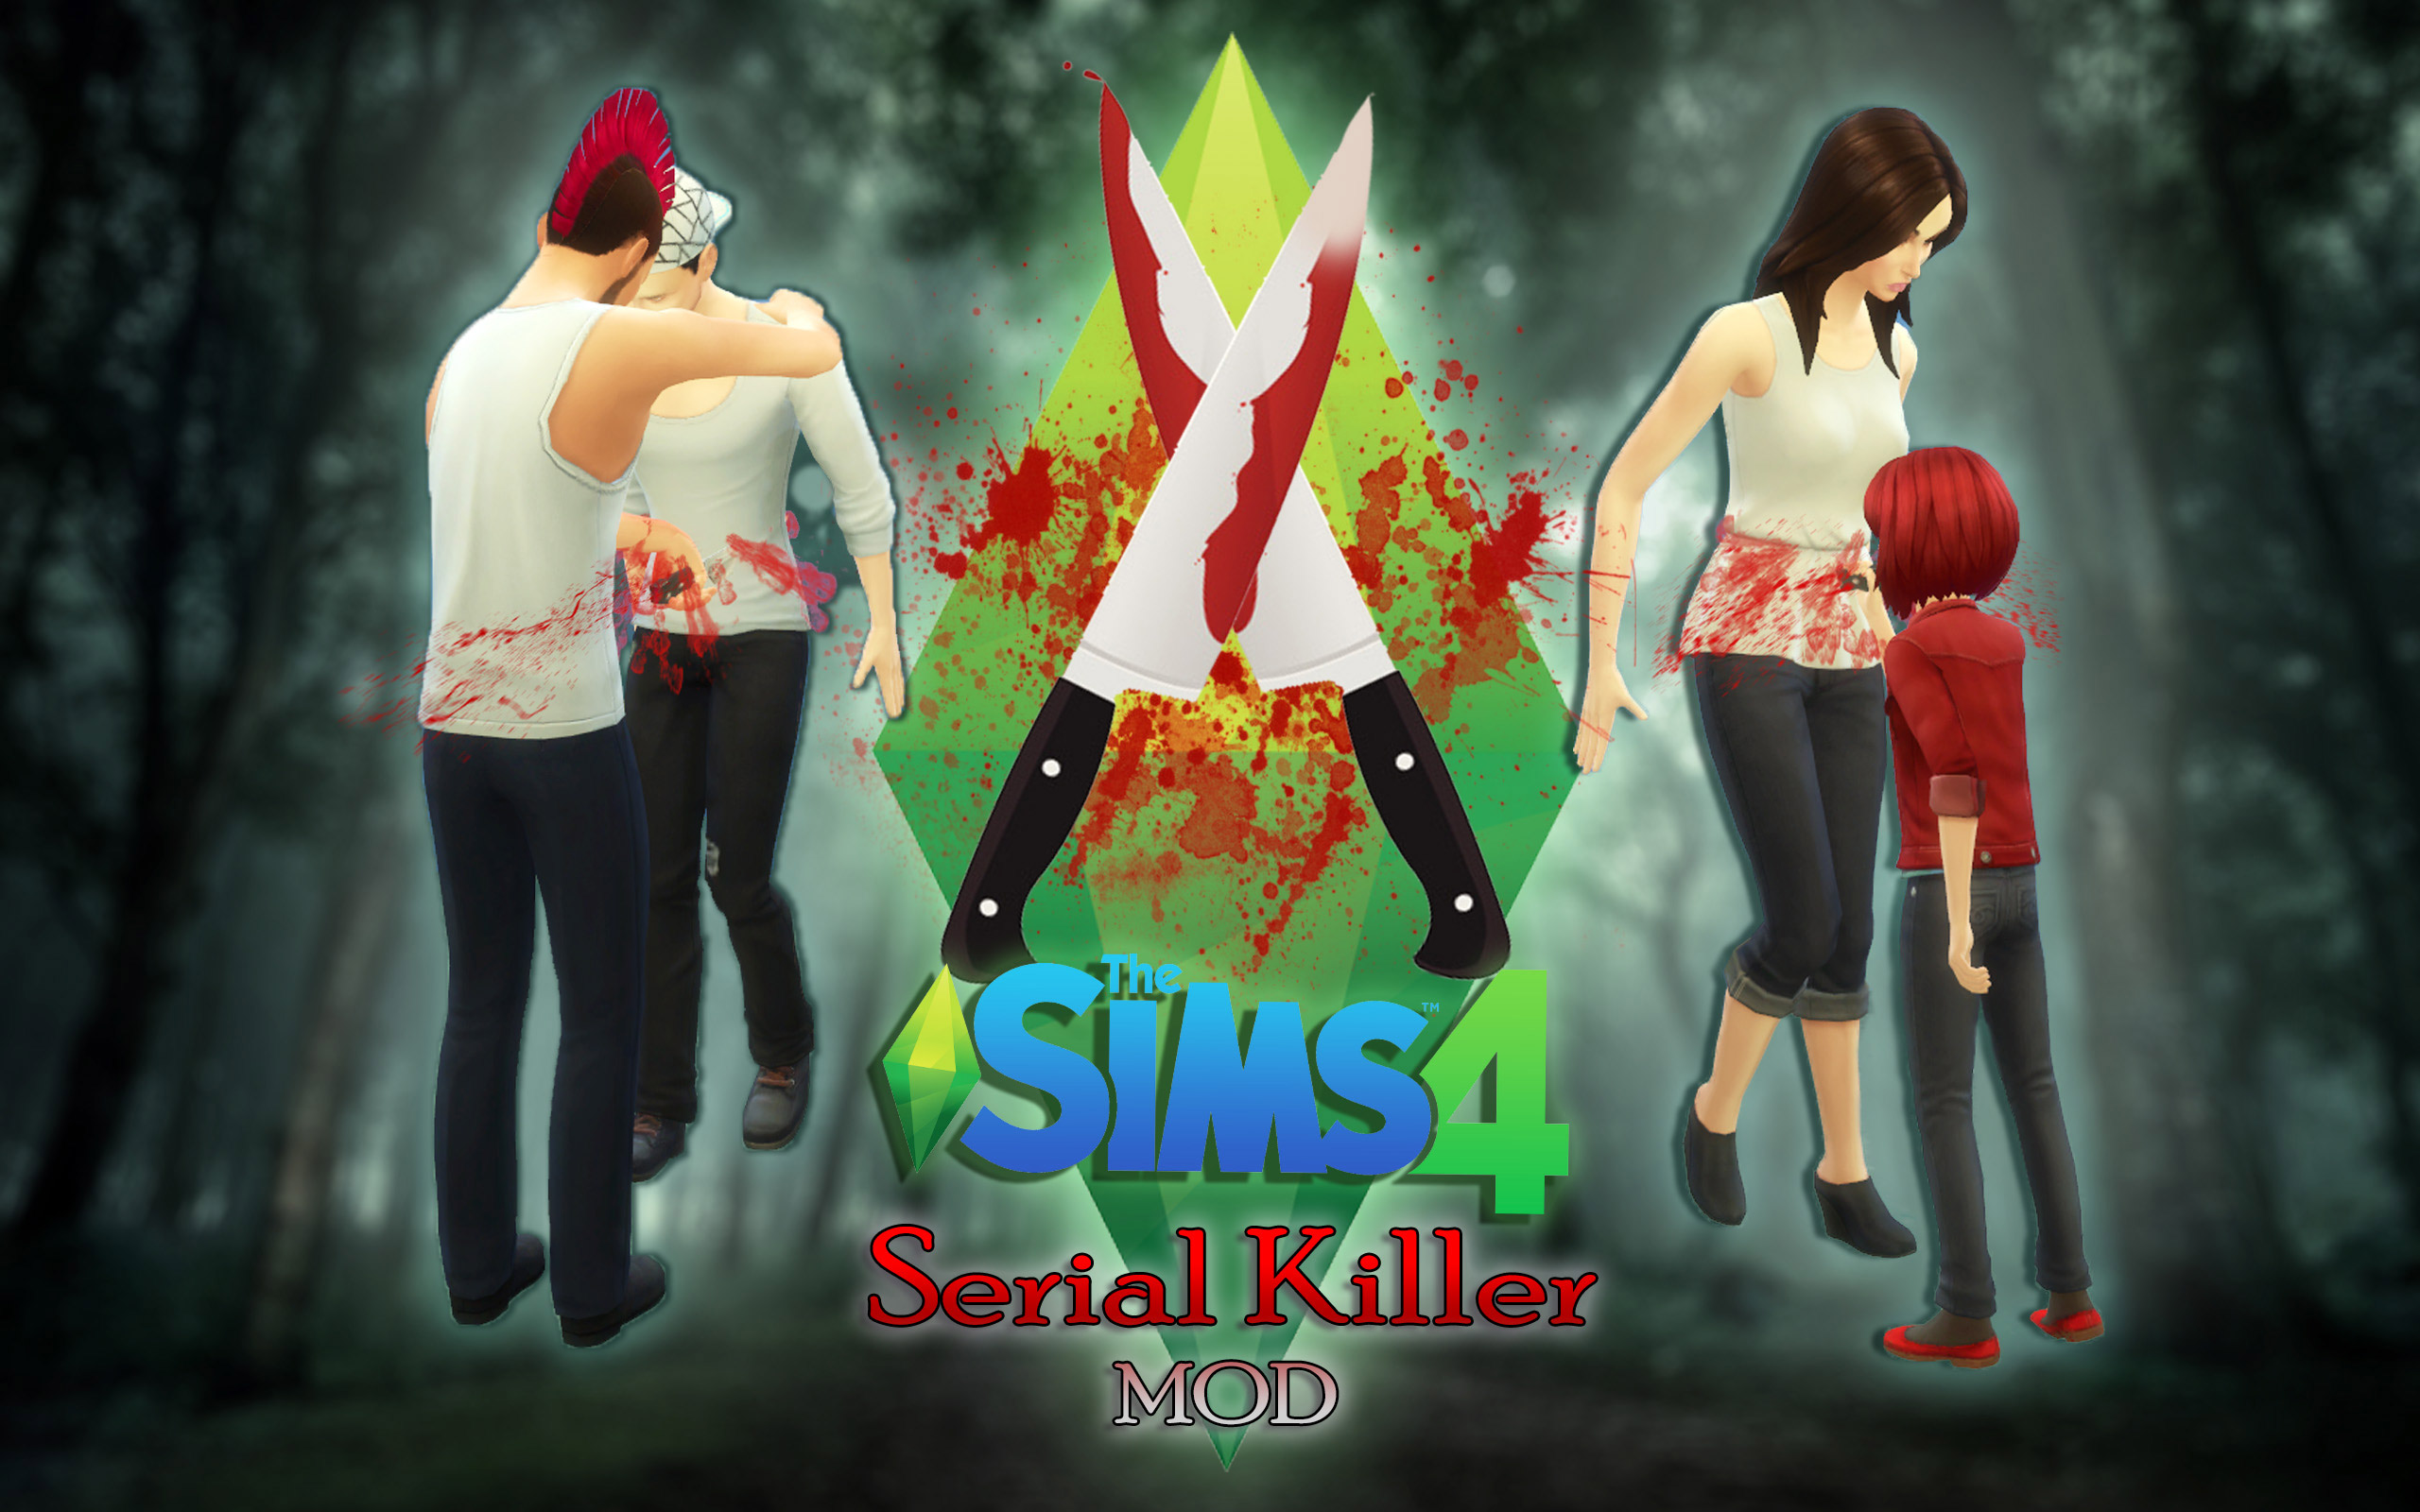 Serial Killer Murder MOD - The Sims 4 Catalog